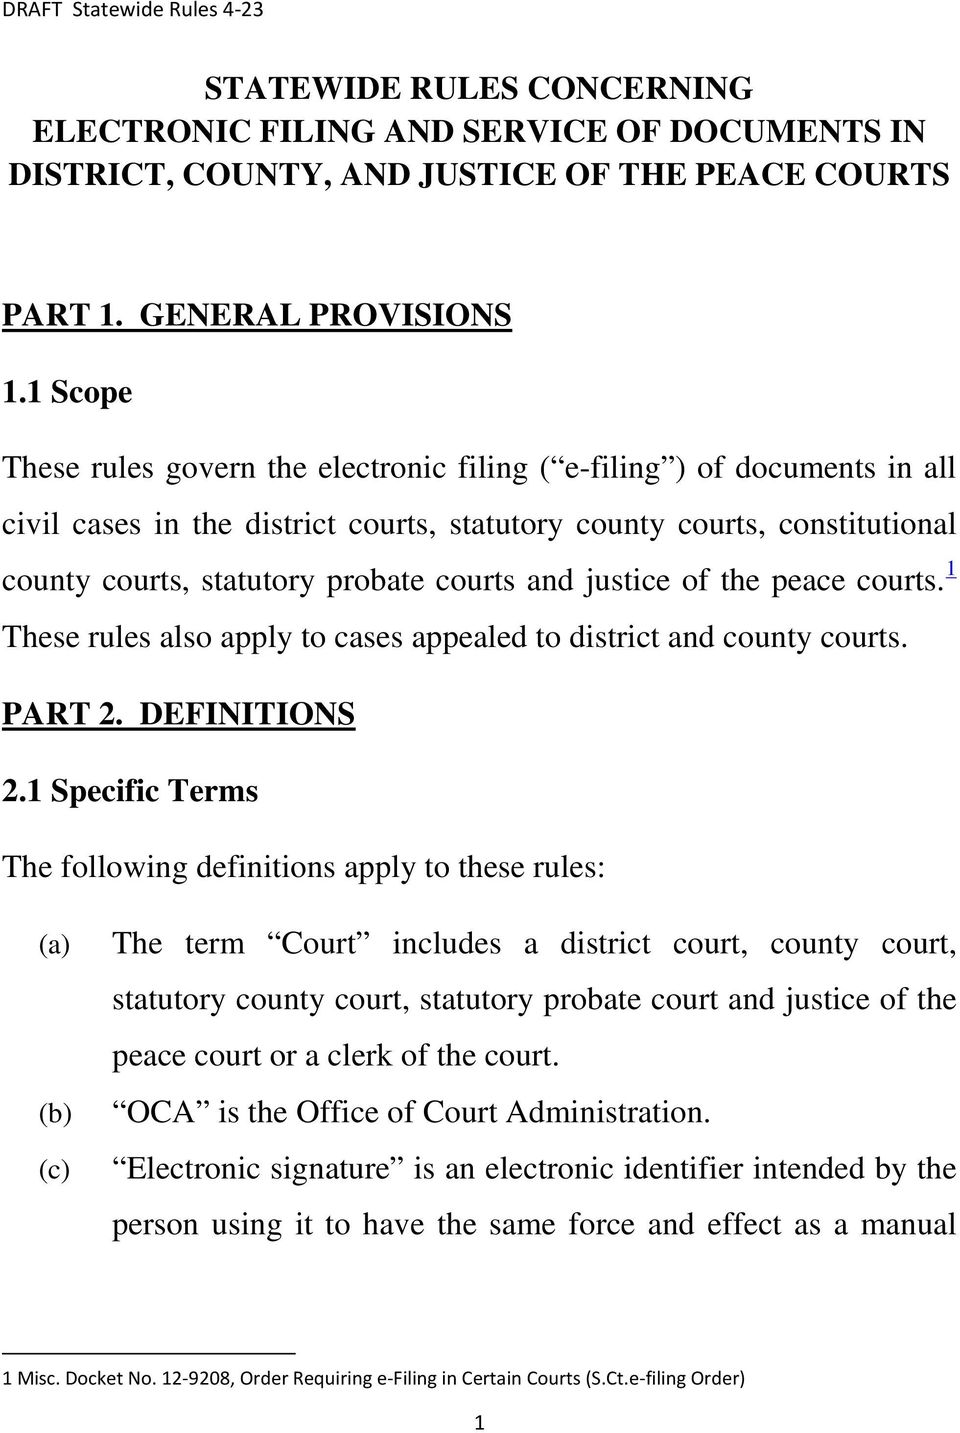 and justice of the peace courts. 1 These rules also apply to cases appealed  to